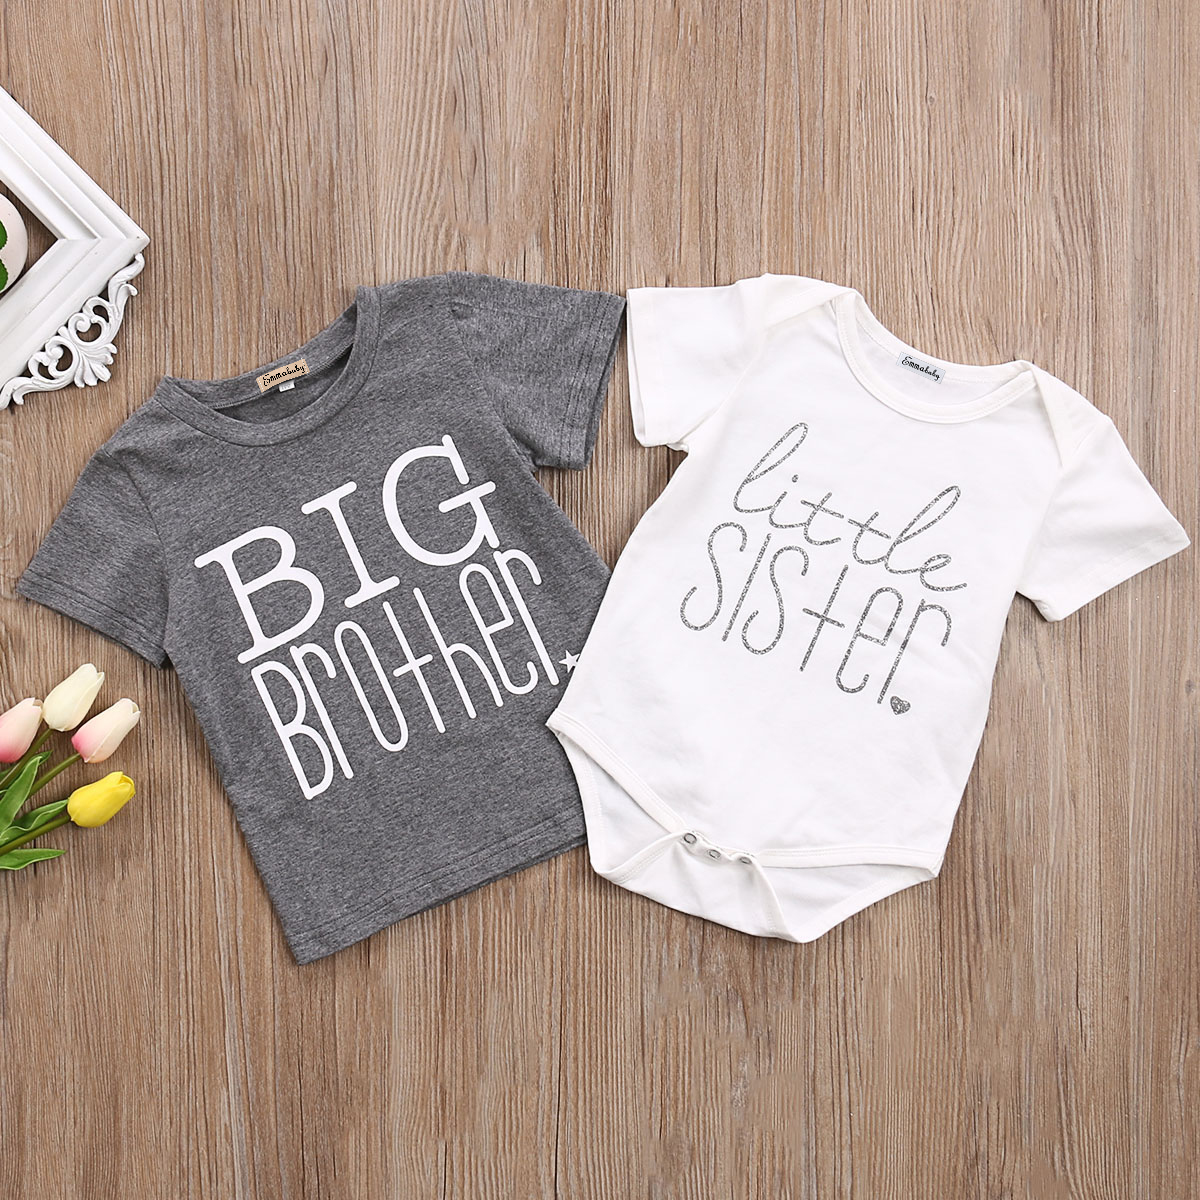 Emmababy T-Shirt Tops Matching Sister Short-Sleeve Cotton Letter And Bodysuit Clthoes